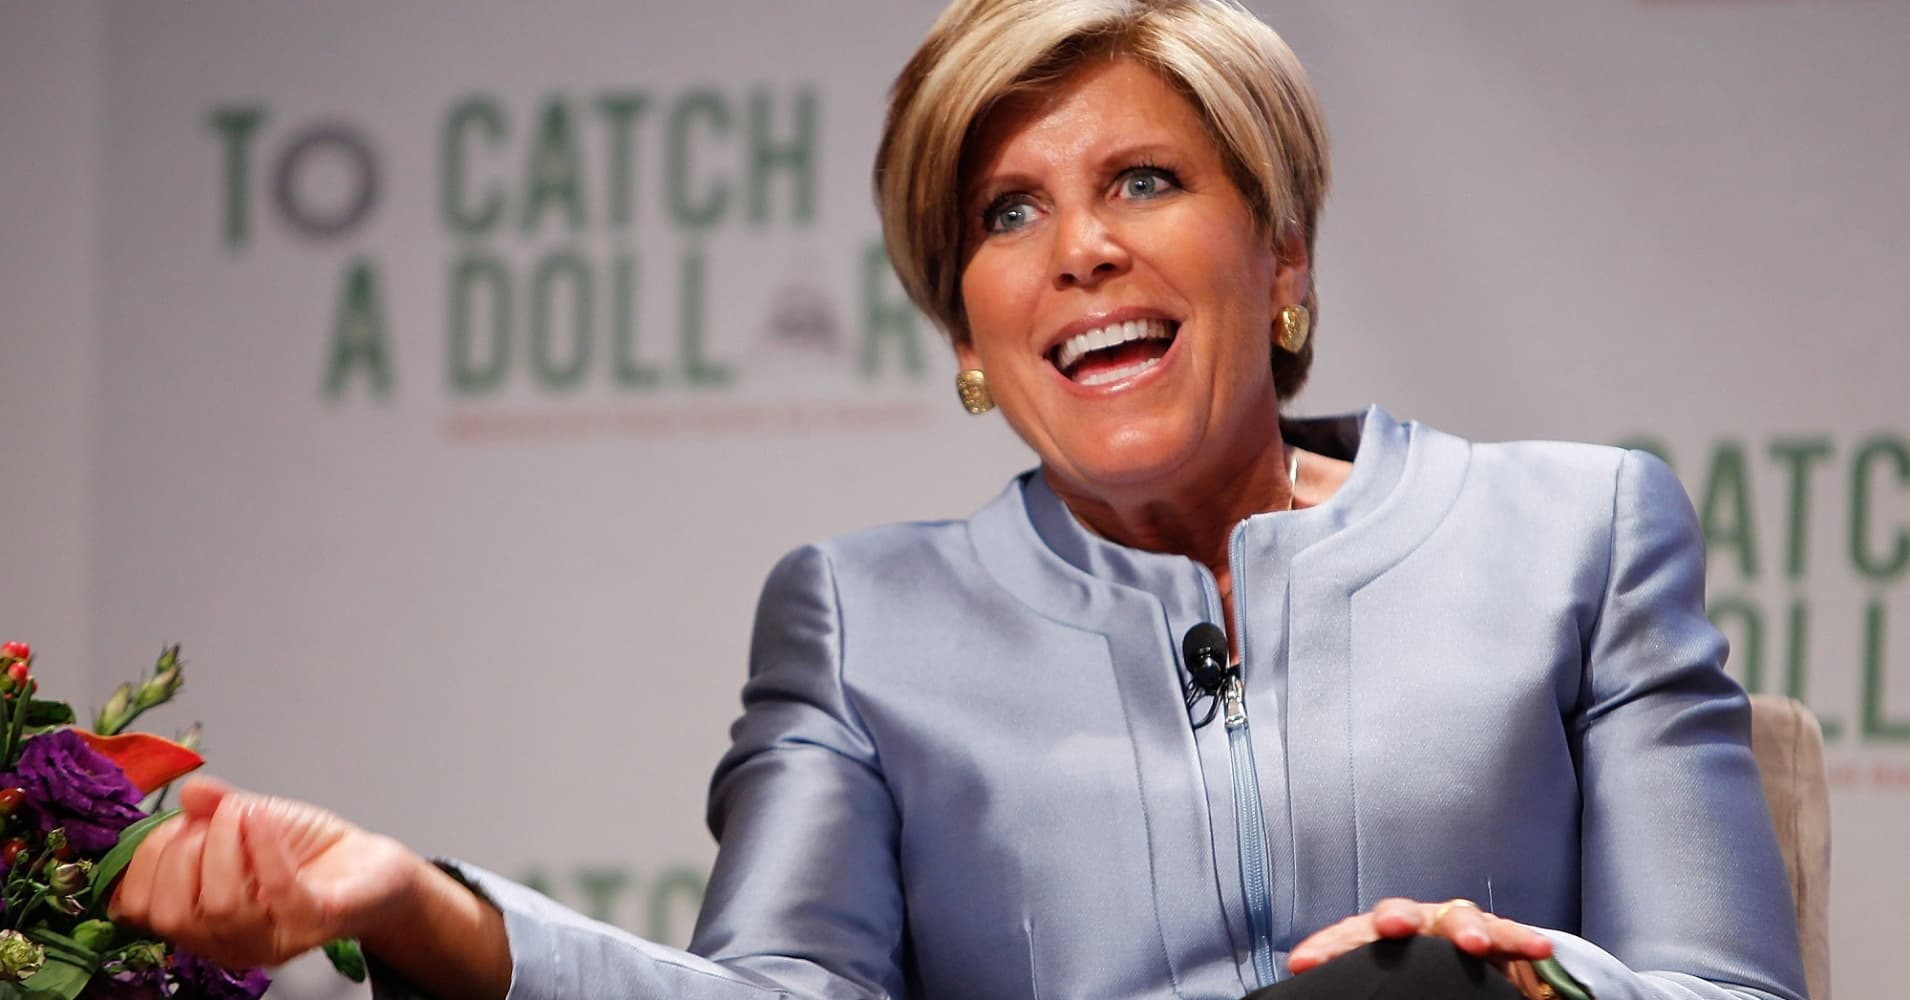 Suze Orman: If you waste money on coffee, it's like 'peeing $1 million down the drain'